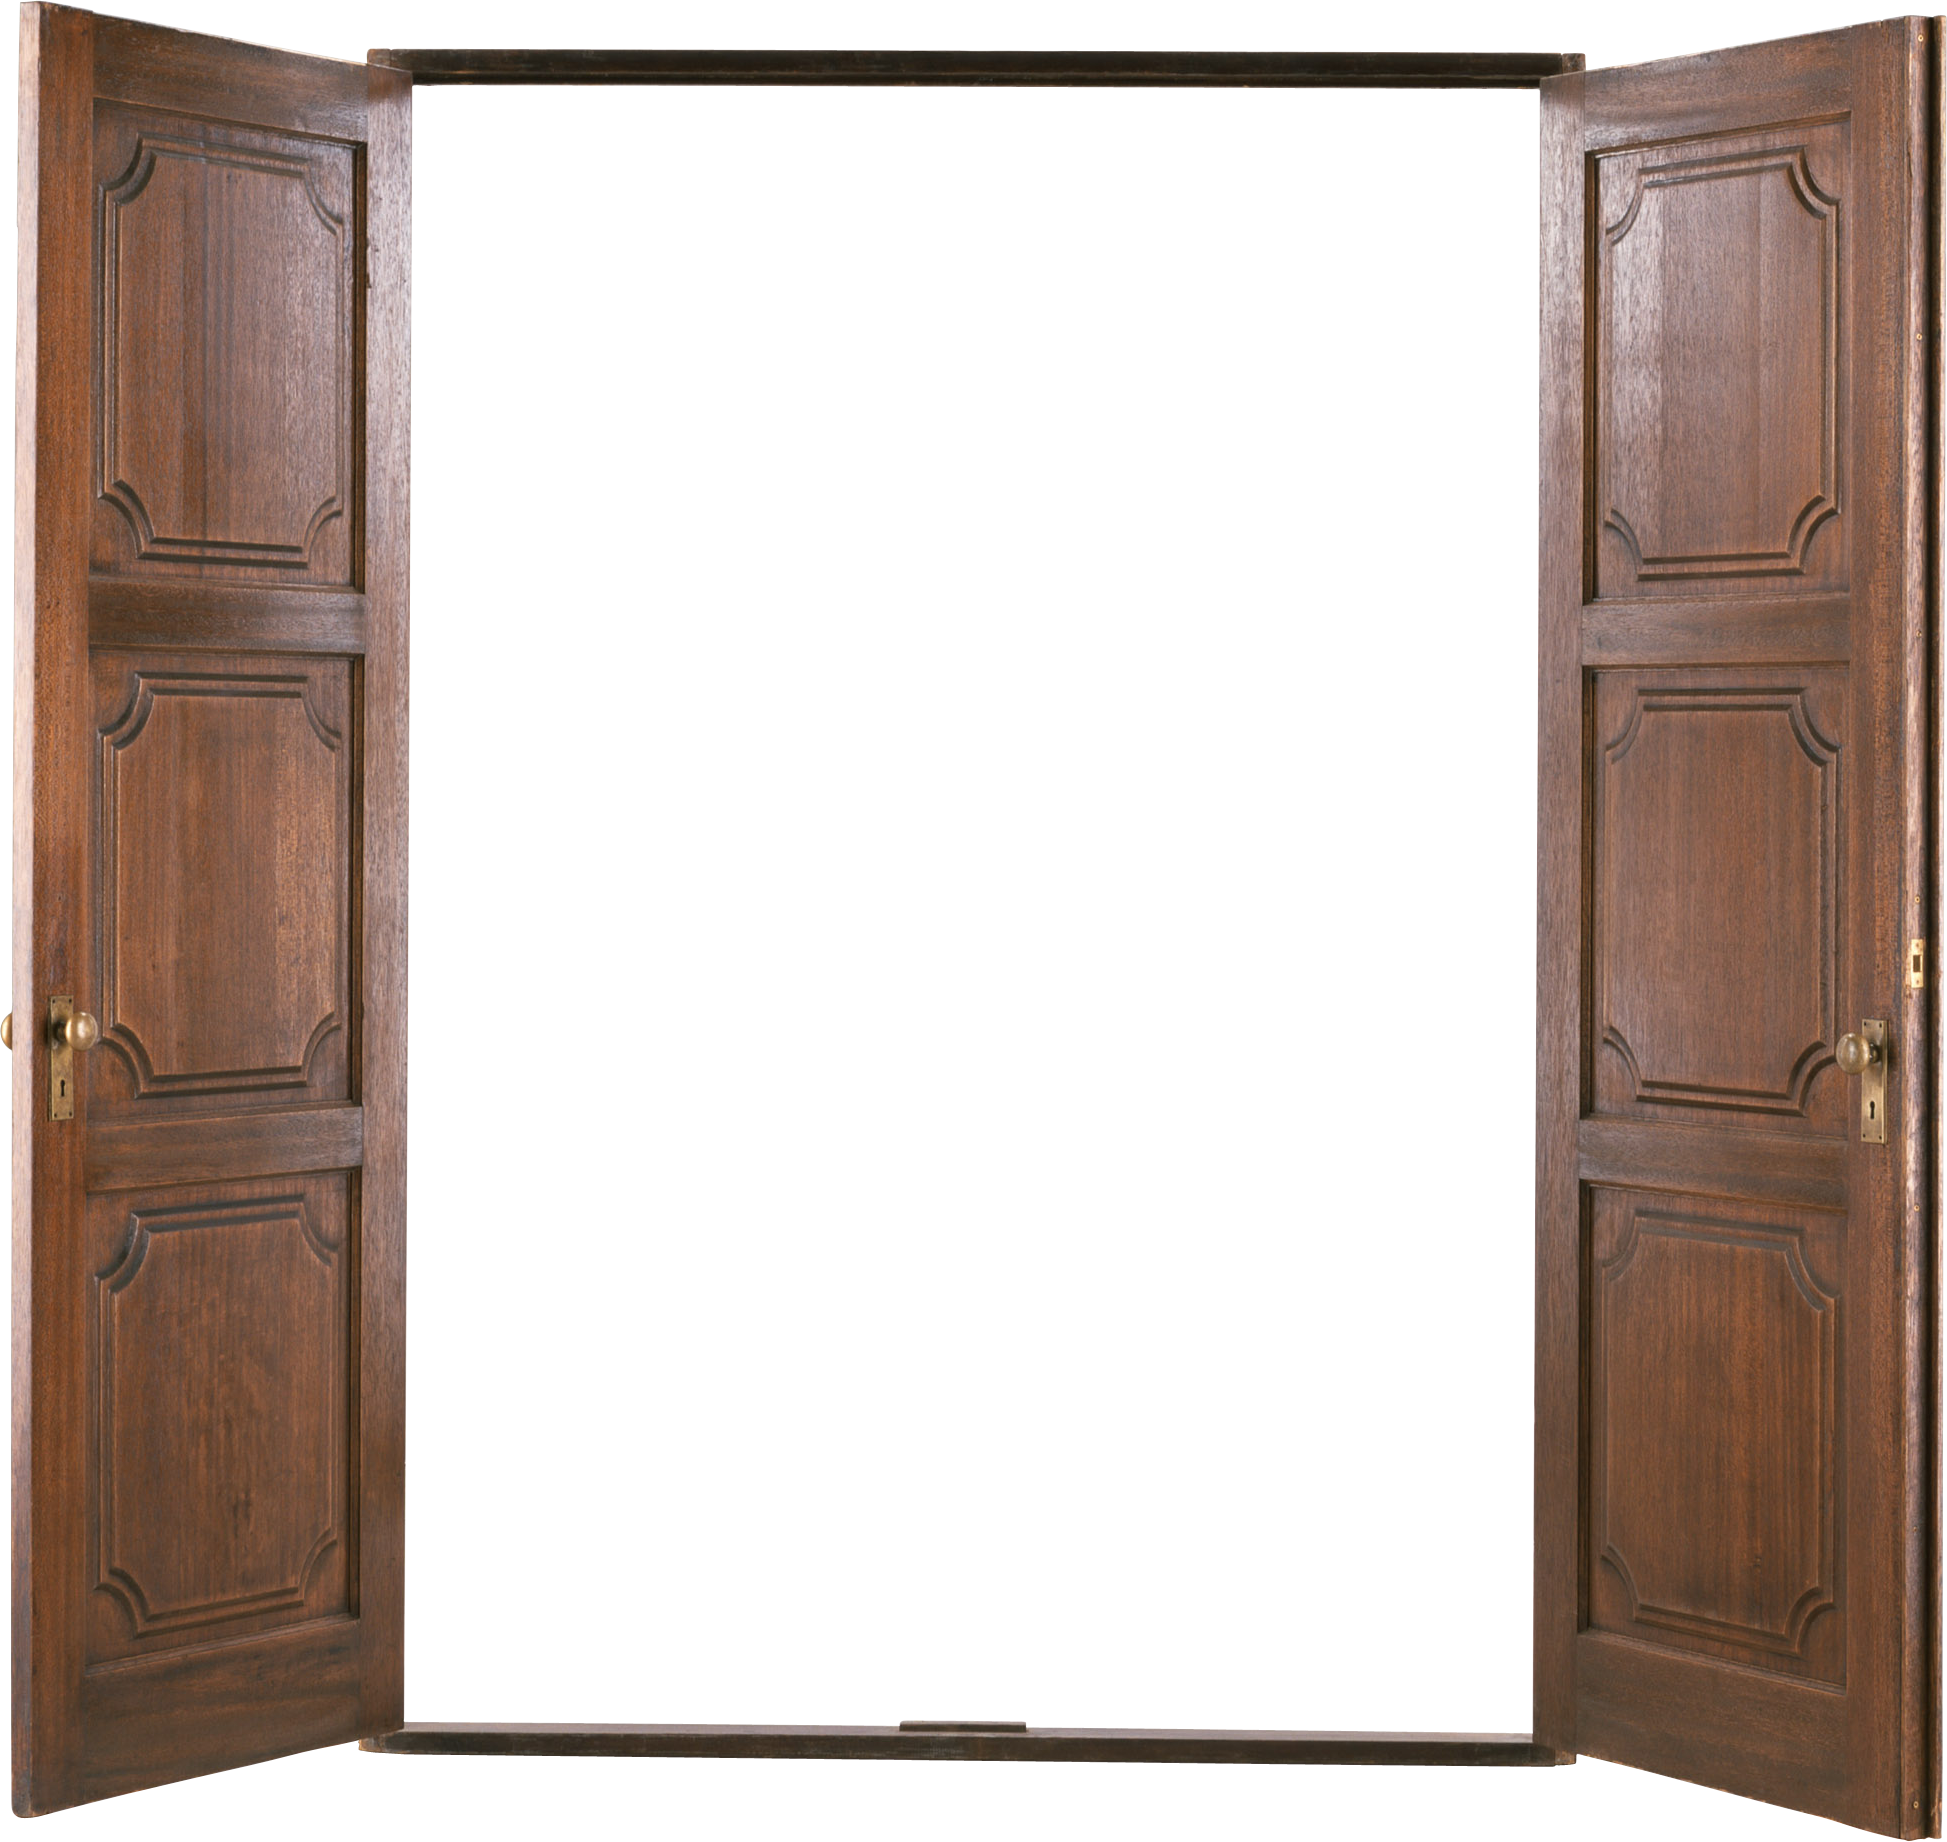 Door PNG Image Without Background | Web Icons PNG